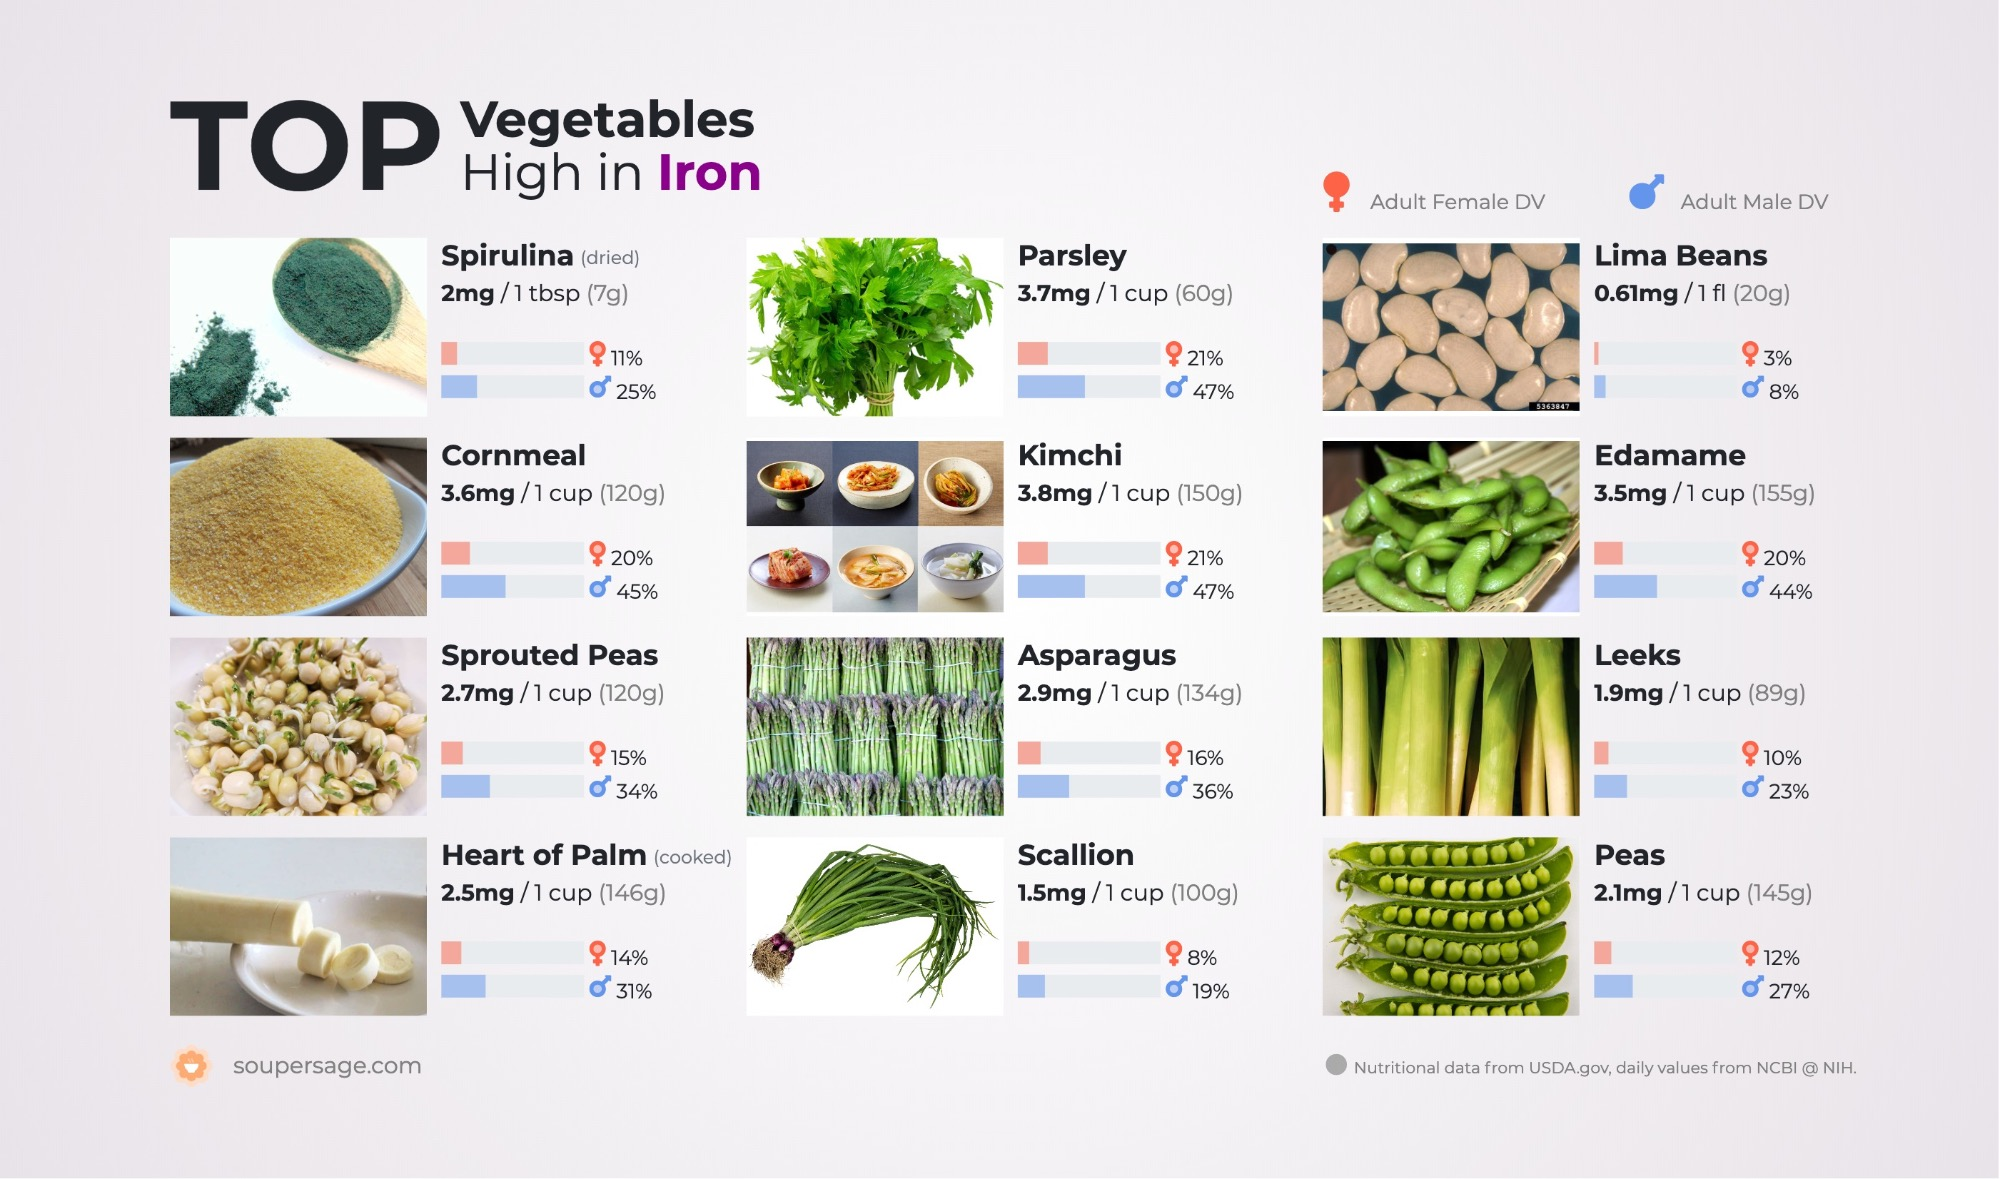 image of Top Vegetables High in Iron